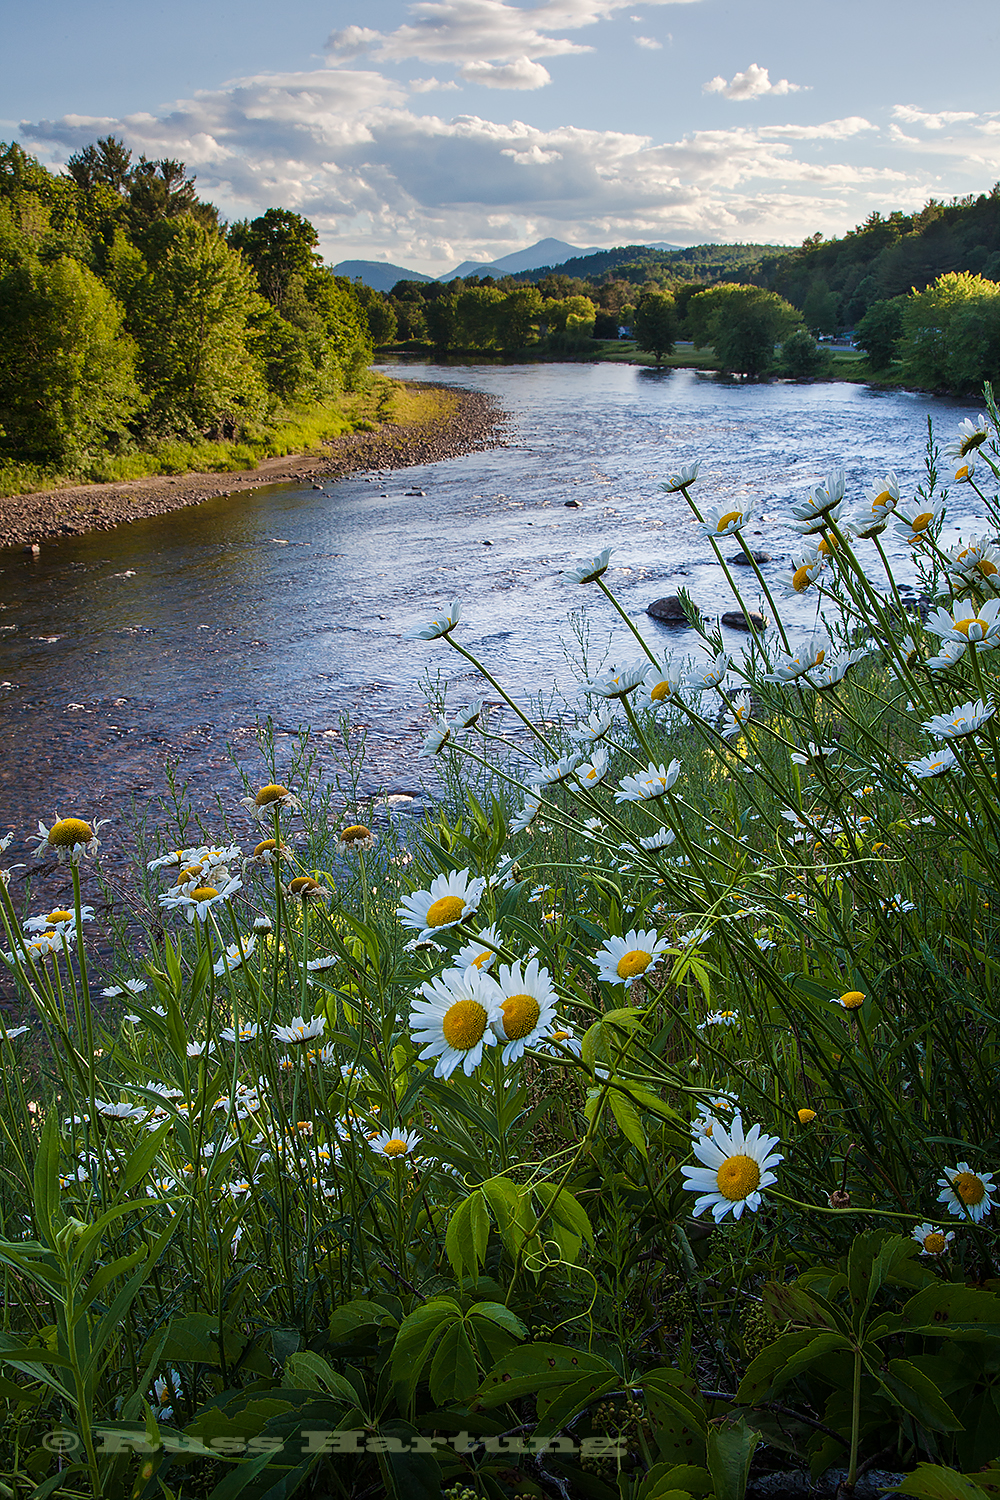 Daisies in bloom along the West Branch of the Ausable River near Ausable Forks.